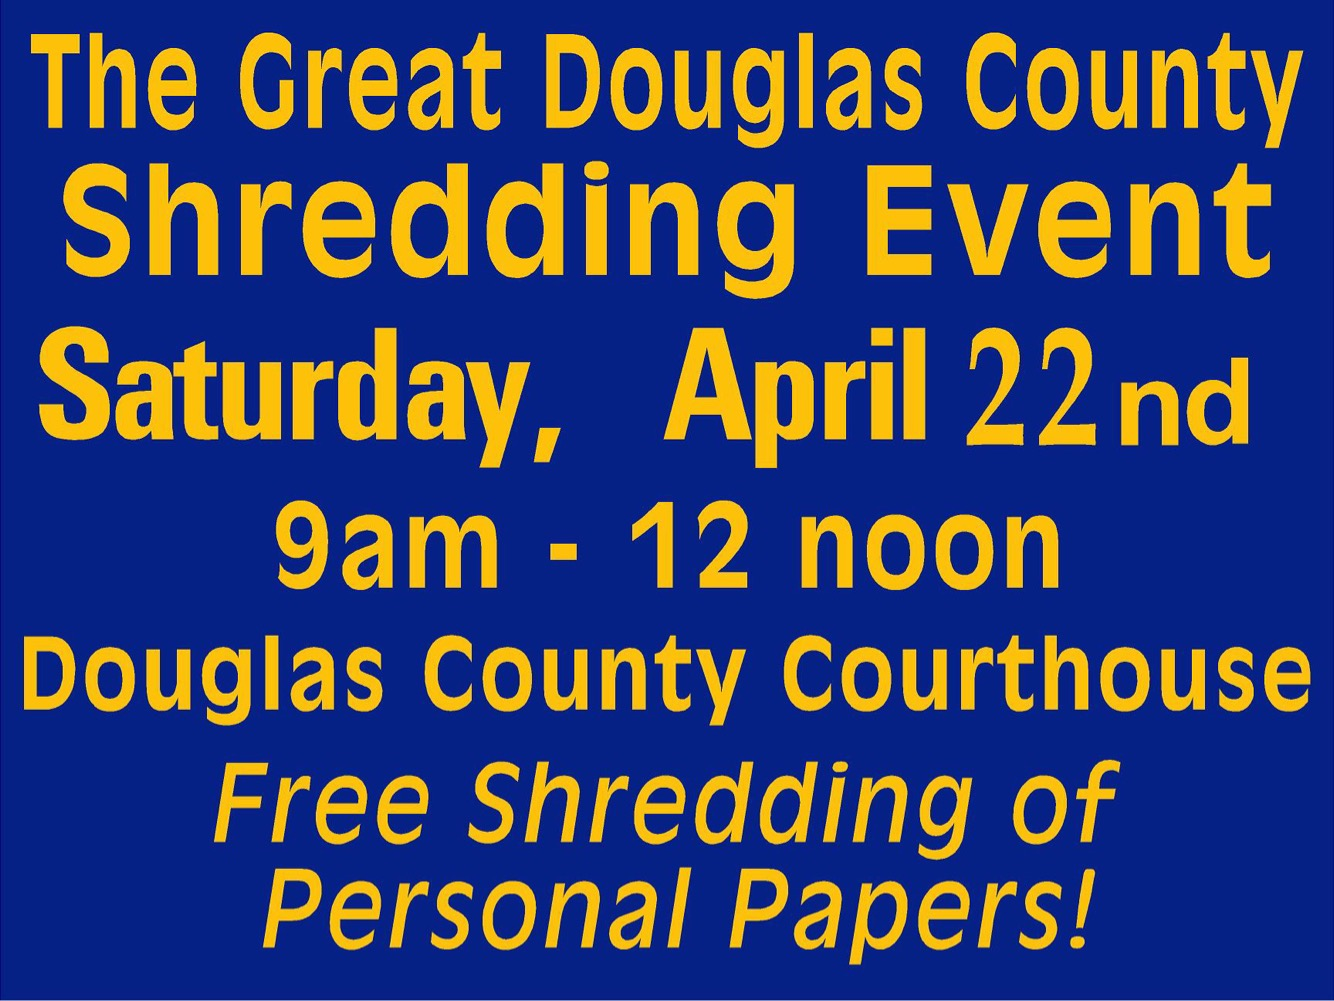 The Great Douglas County Shredding Event: Coming Up This April